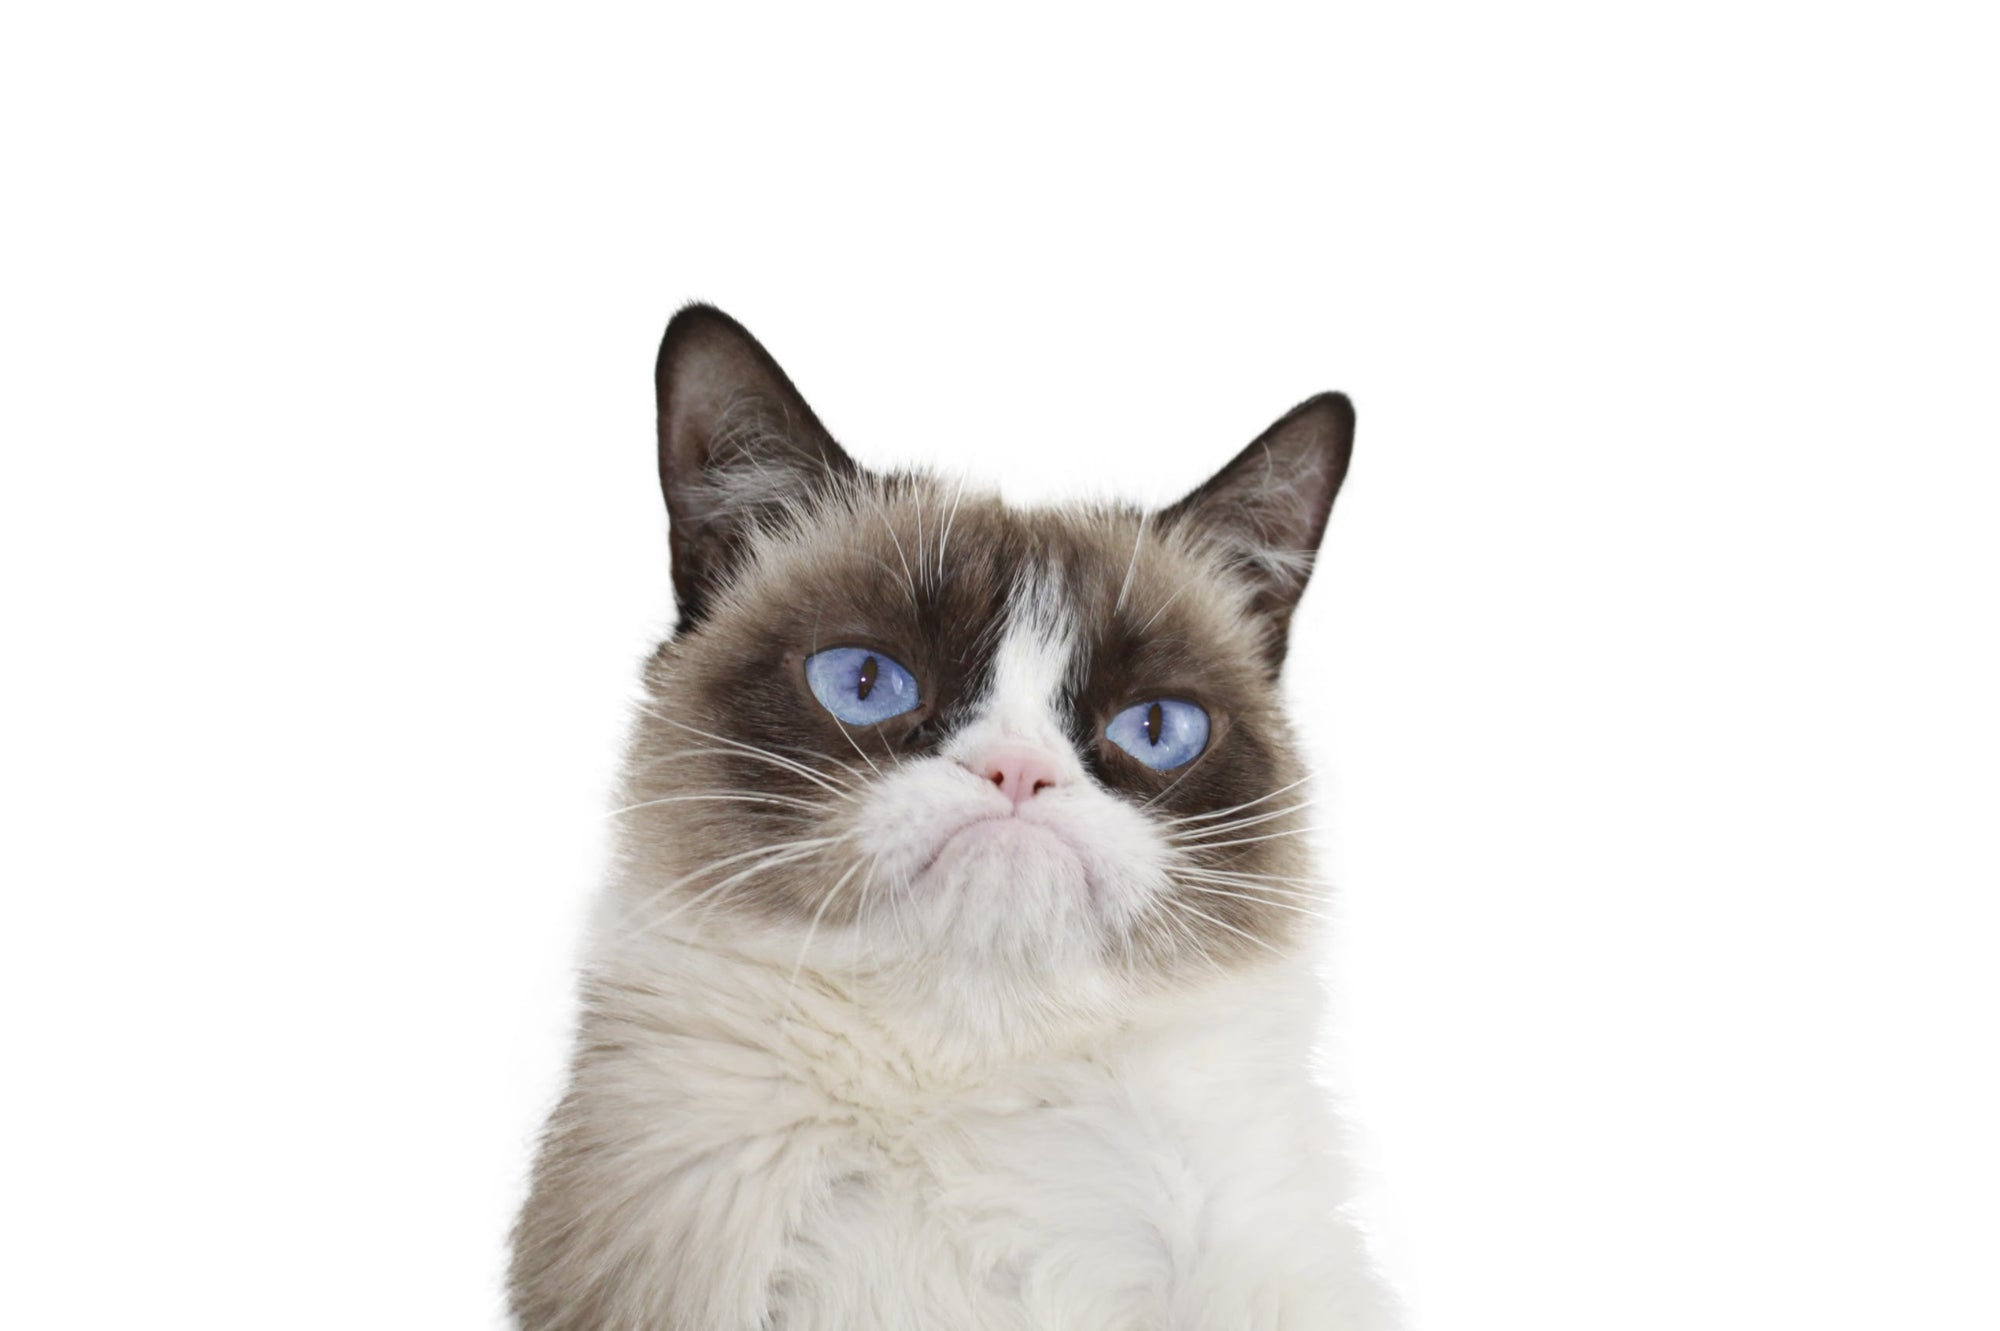 Grumpy-Cat-Grumpy-Cat-Wallpaper purrfect apparel